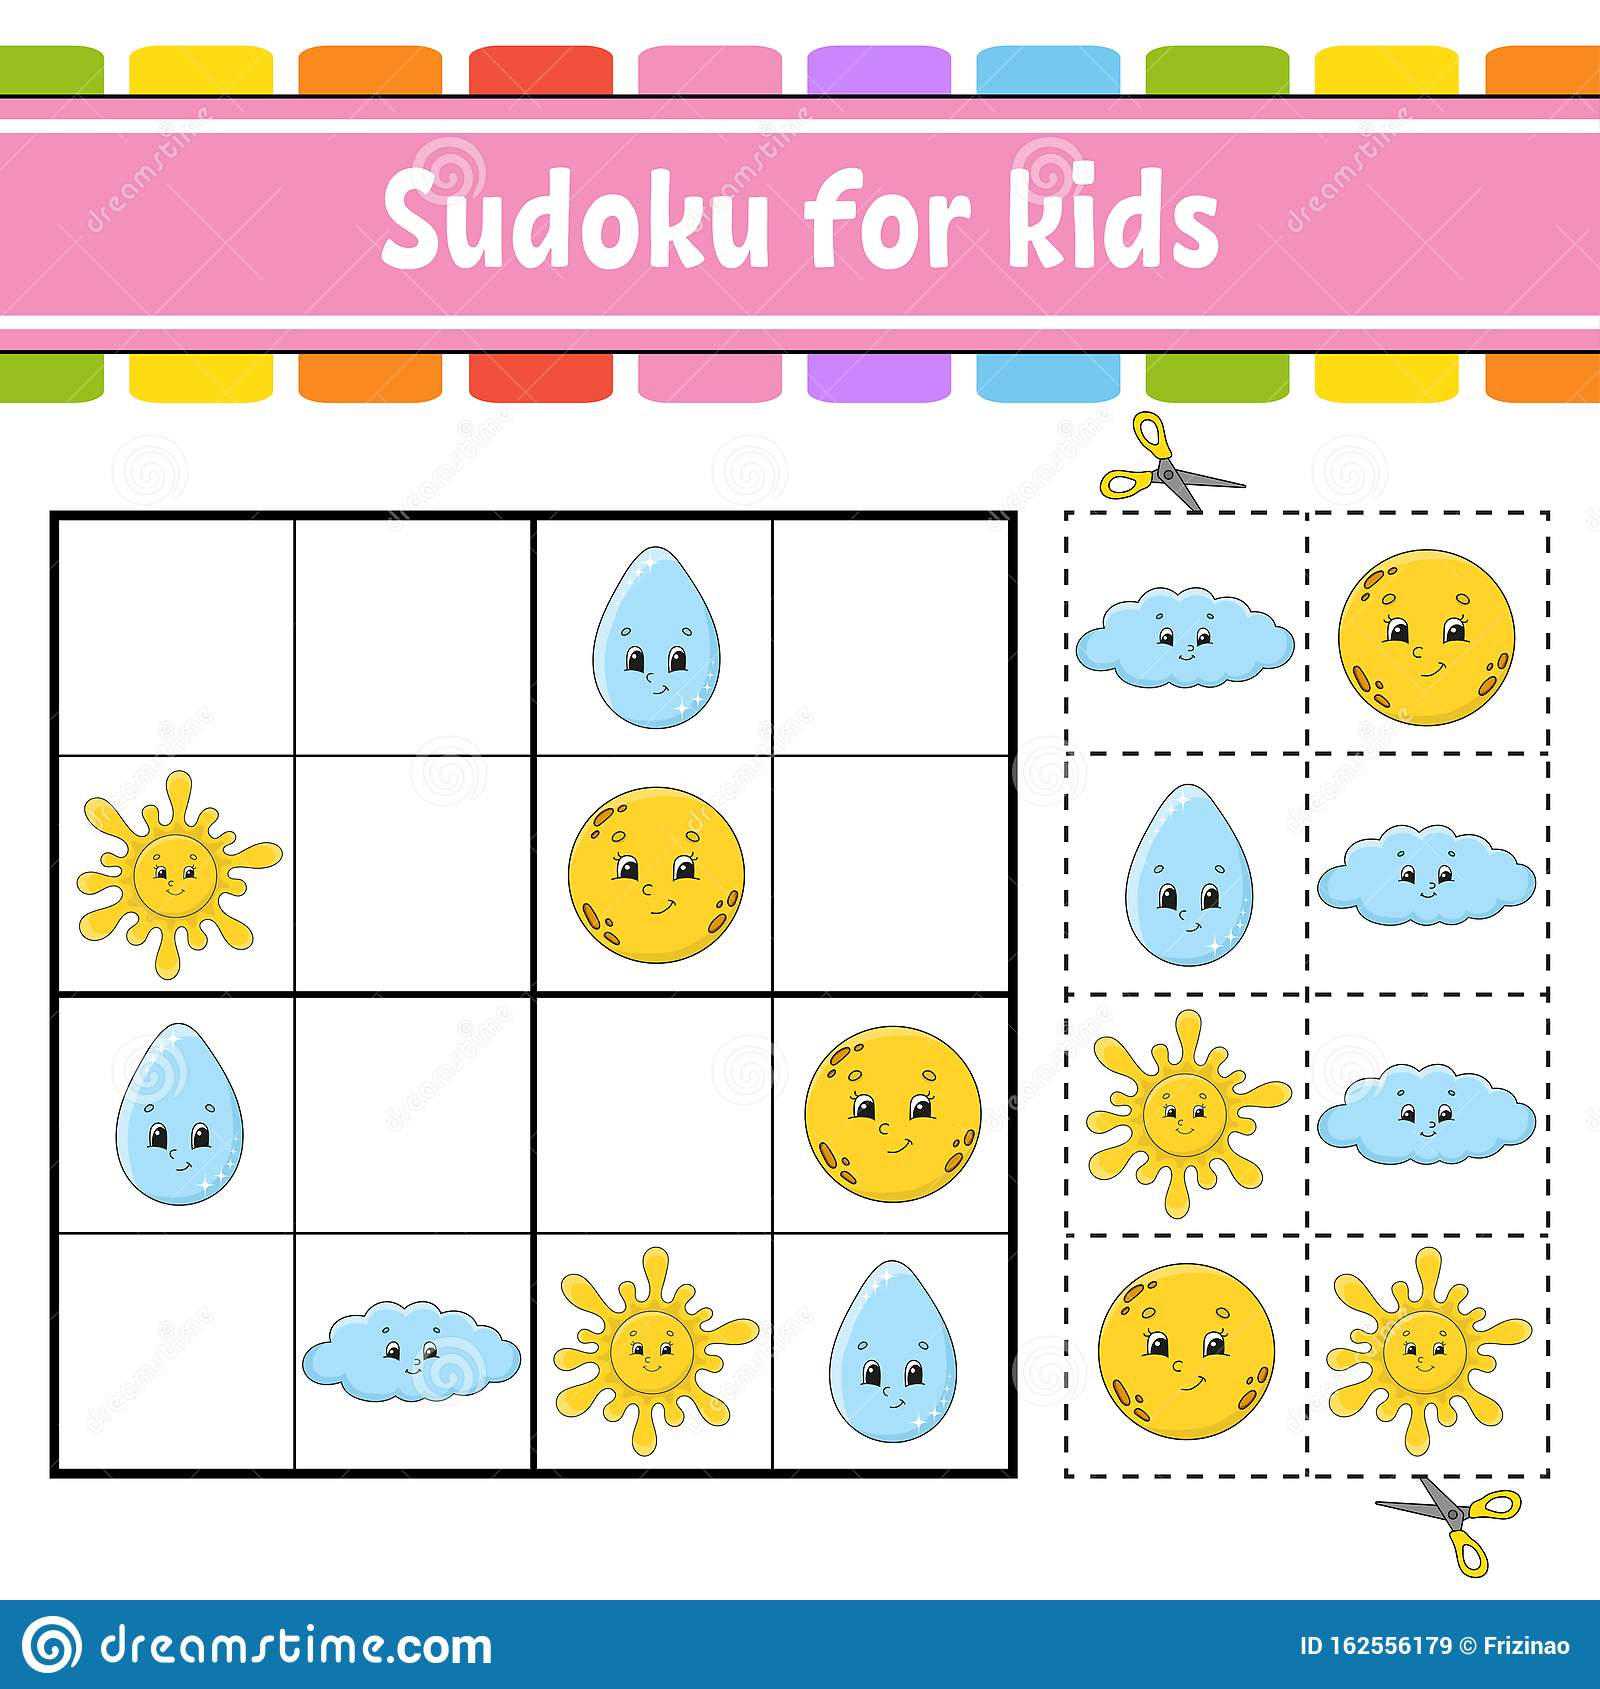 Sudoku For Kids Education Developing Worksheet Activity